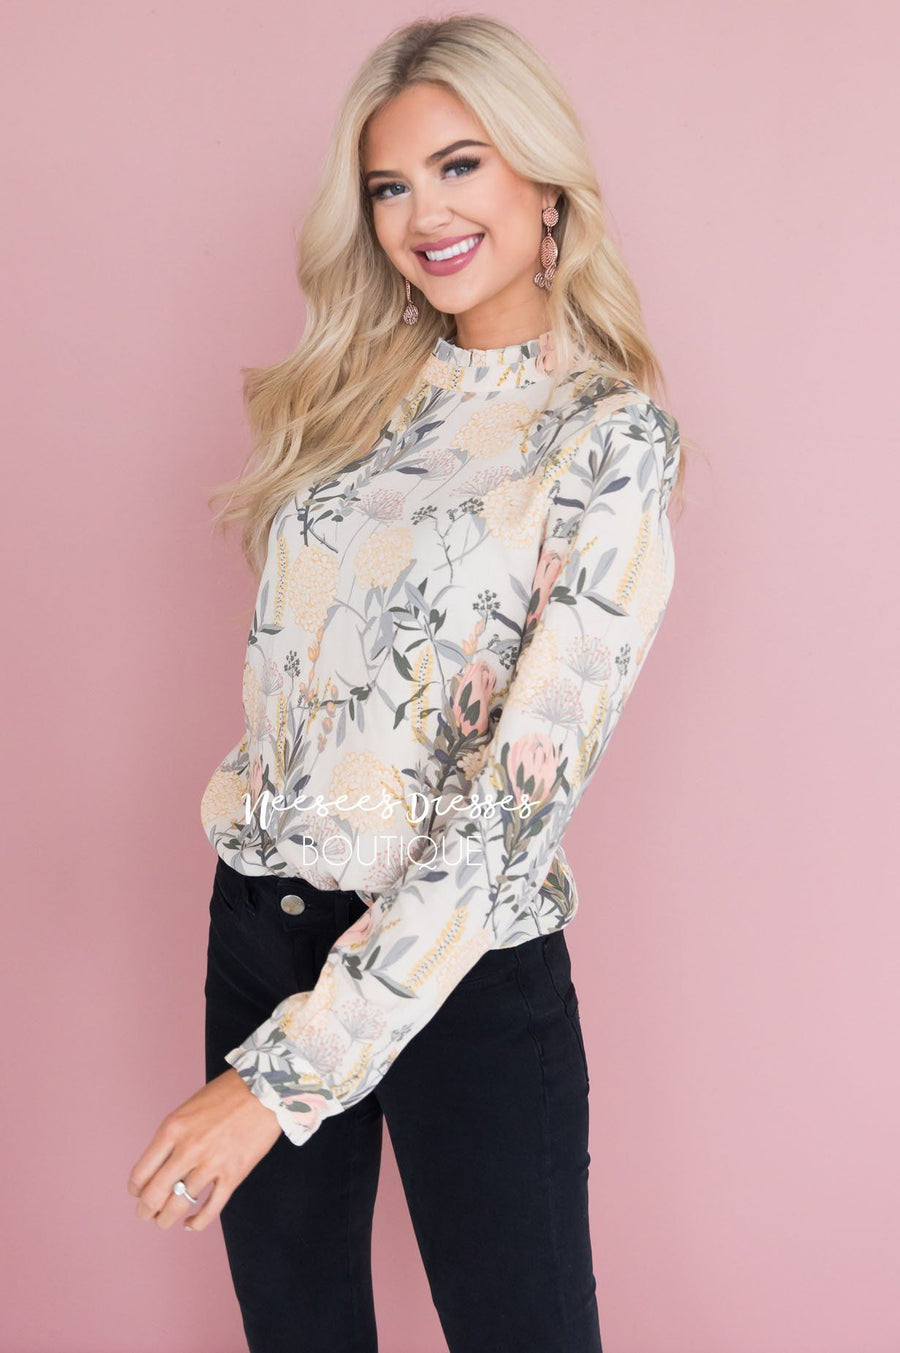 Flower Garden Modest Blouse Tops vendor-unknown